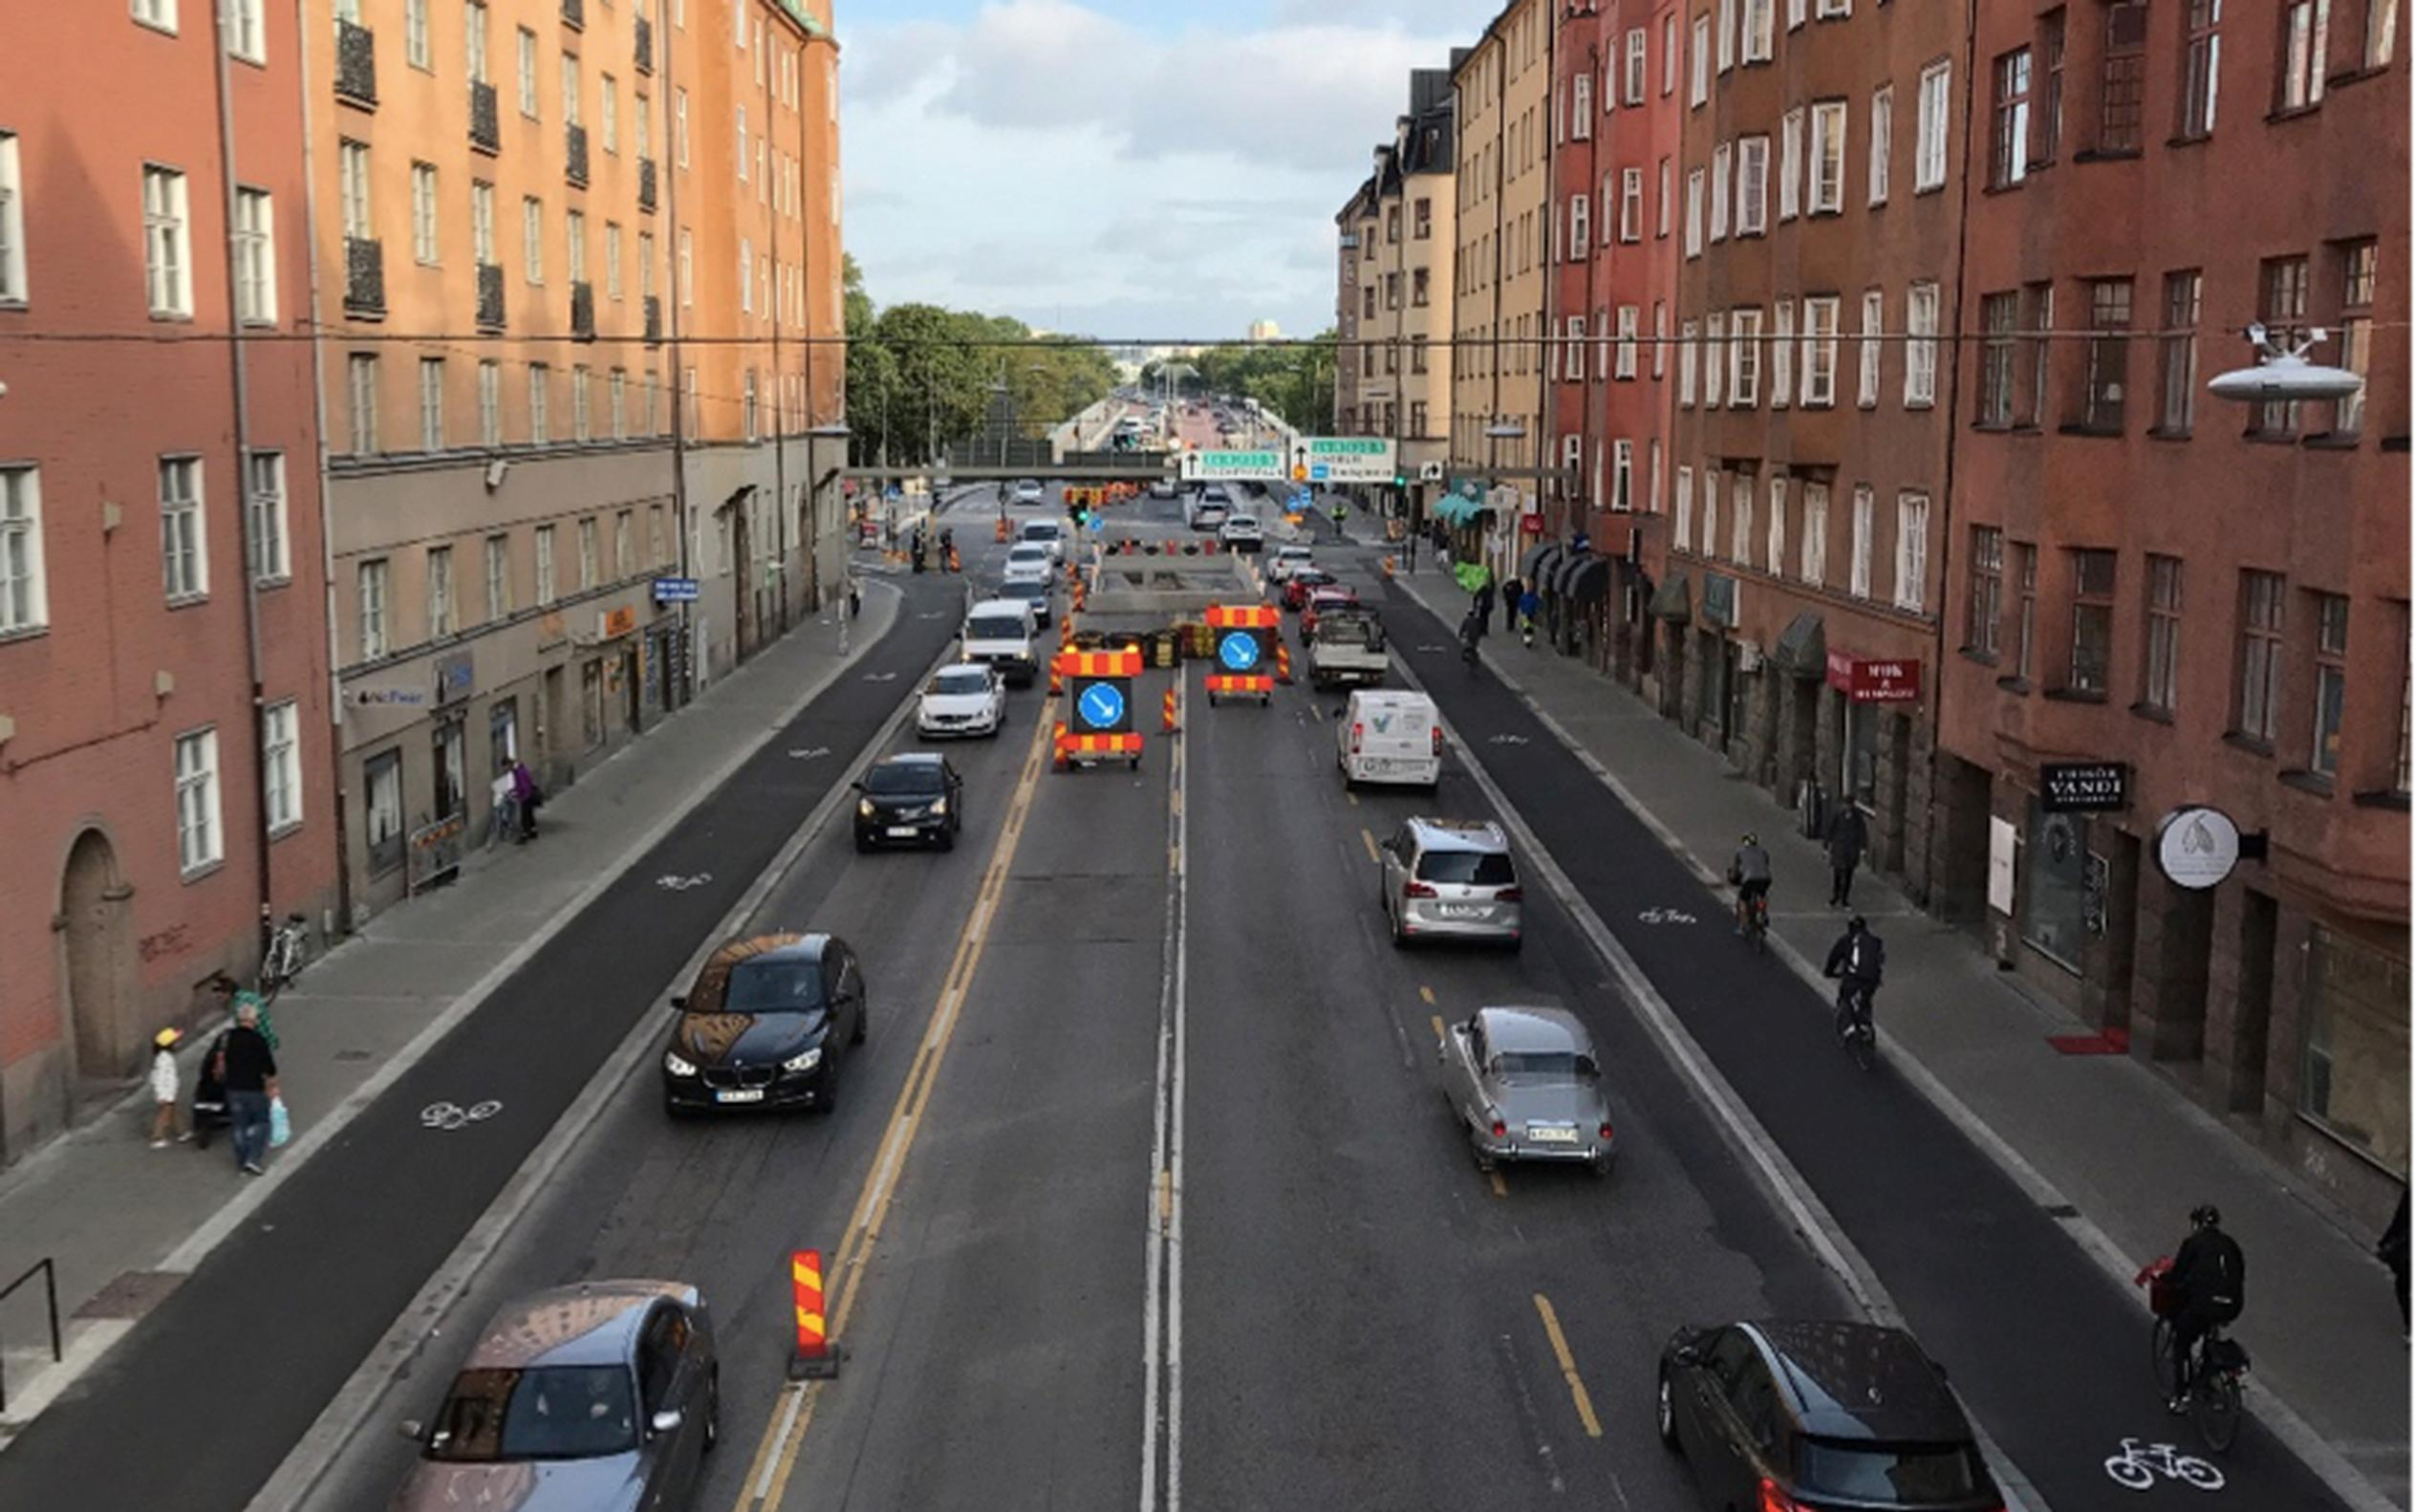 A fall in traffic in Stockholm city centre has led to the reallocation of road space to kerbed bike lanes.